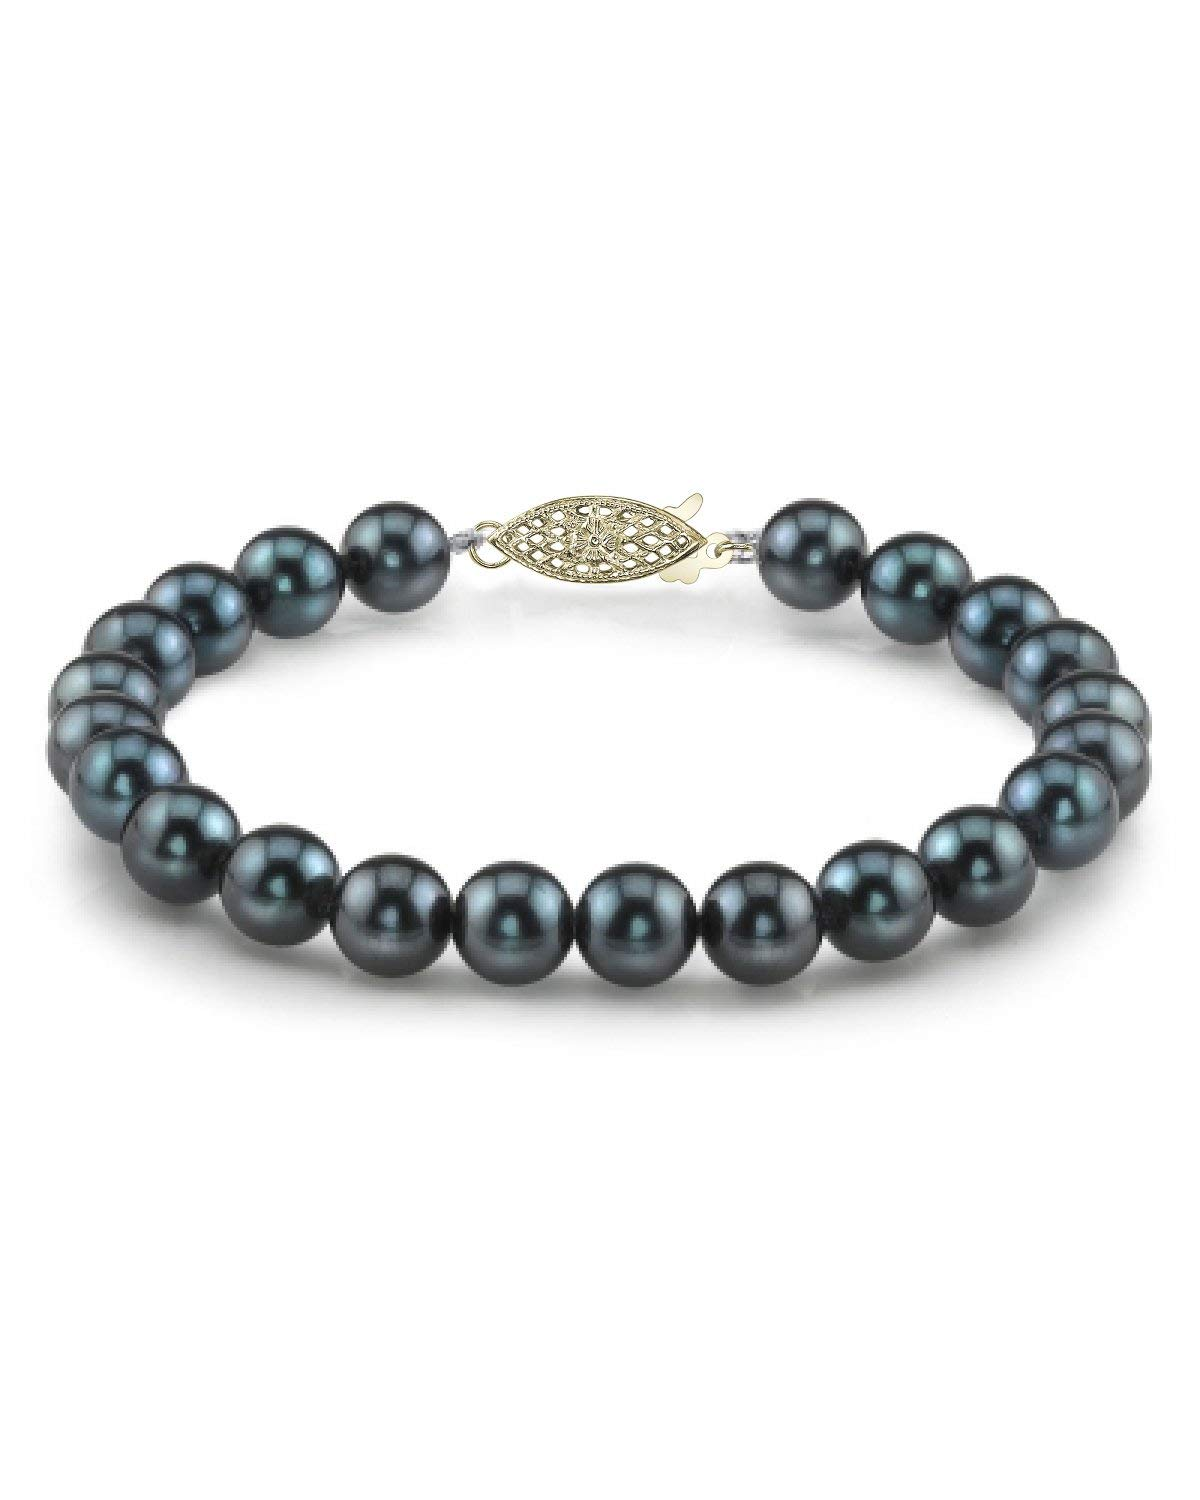 THE PEARL SOURCE 14K Gold 7-7.5mm AAA Quality Round Black Japanese Akoya Saltwater Cultured Pearl Bracelet for Women